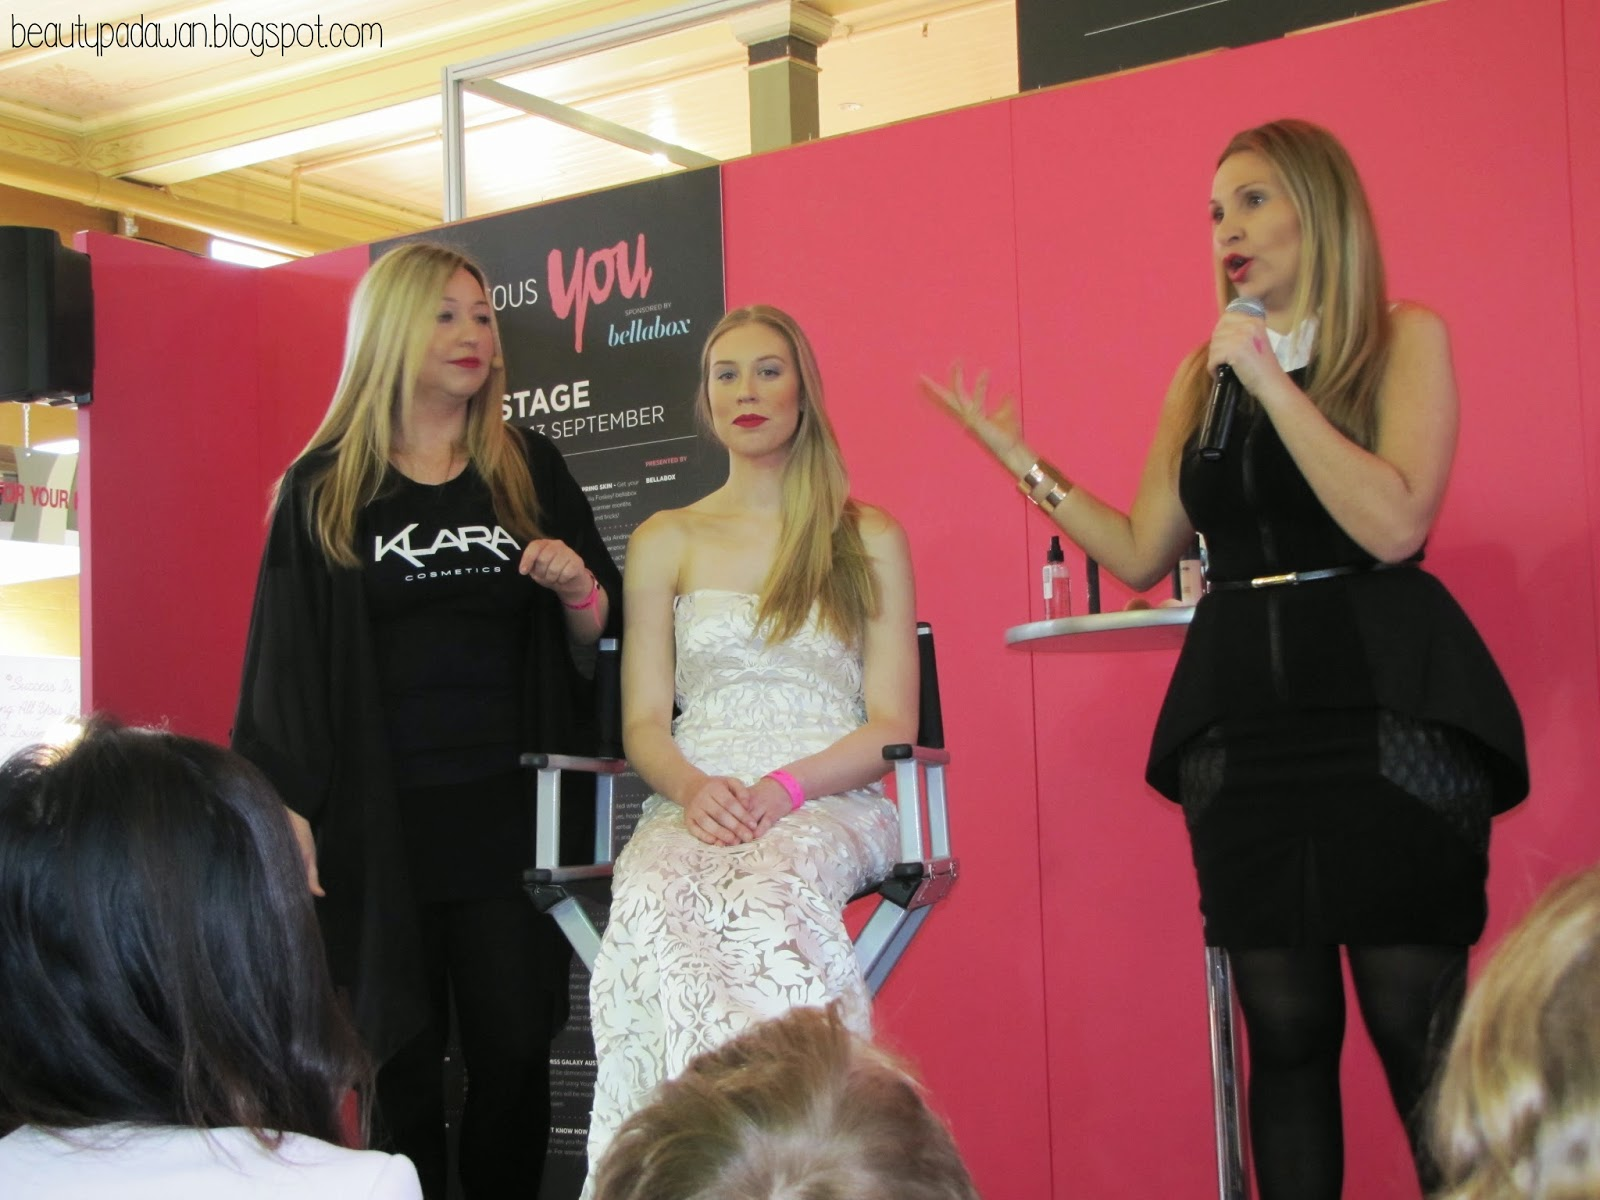 Beautiful You Australia 2014; Klara Cosmetics